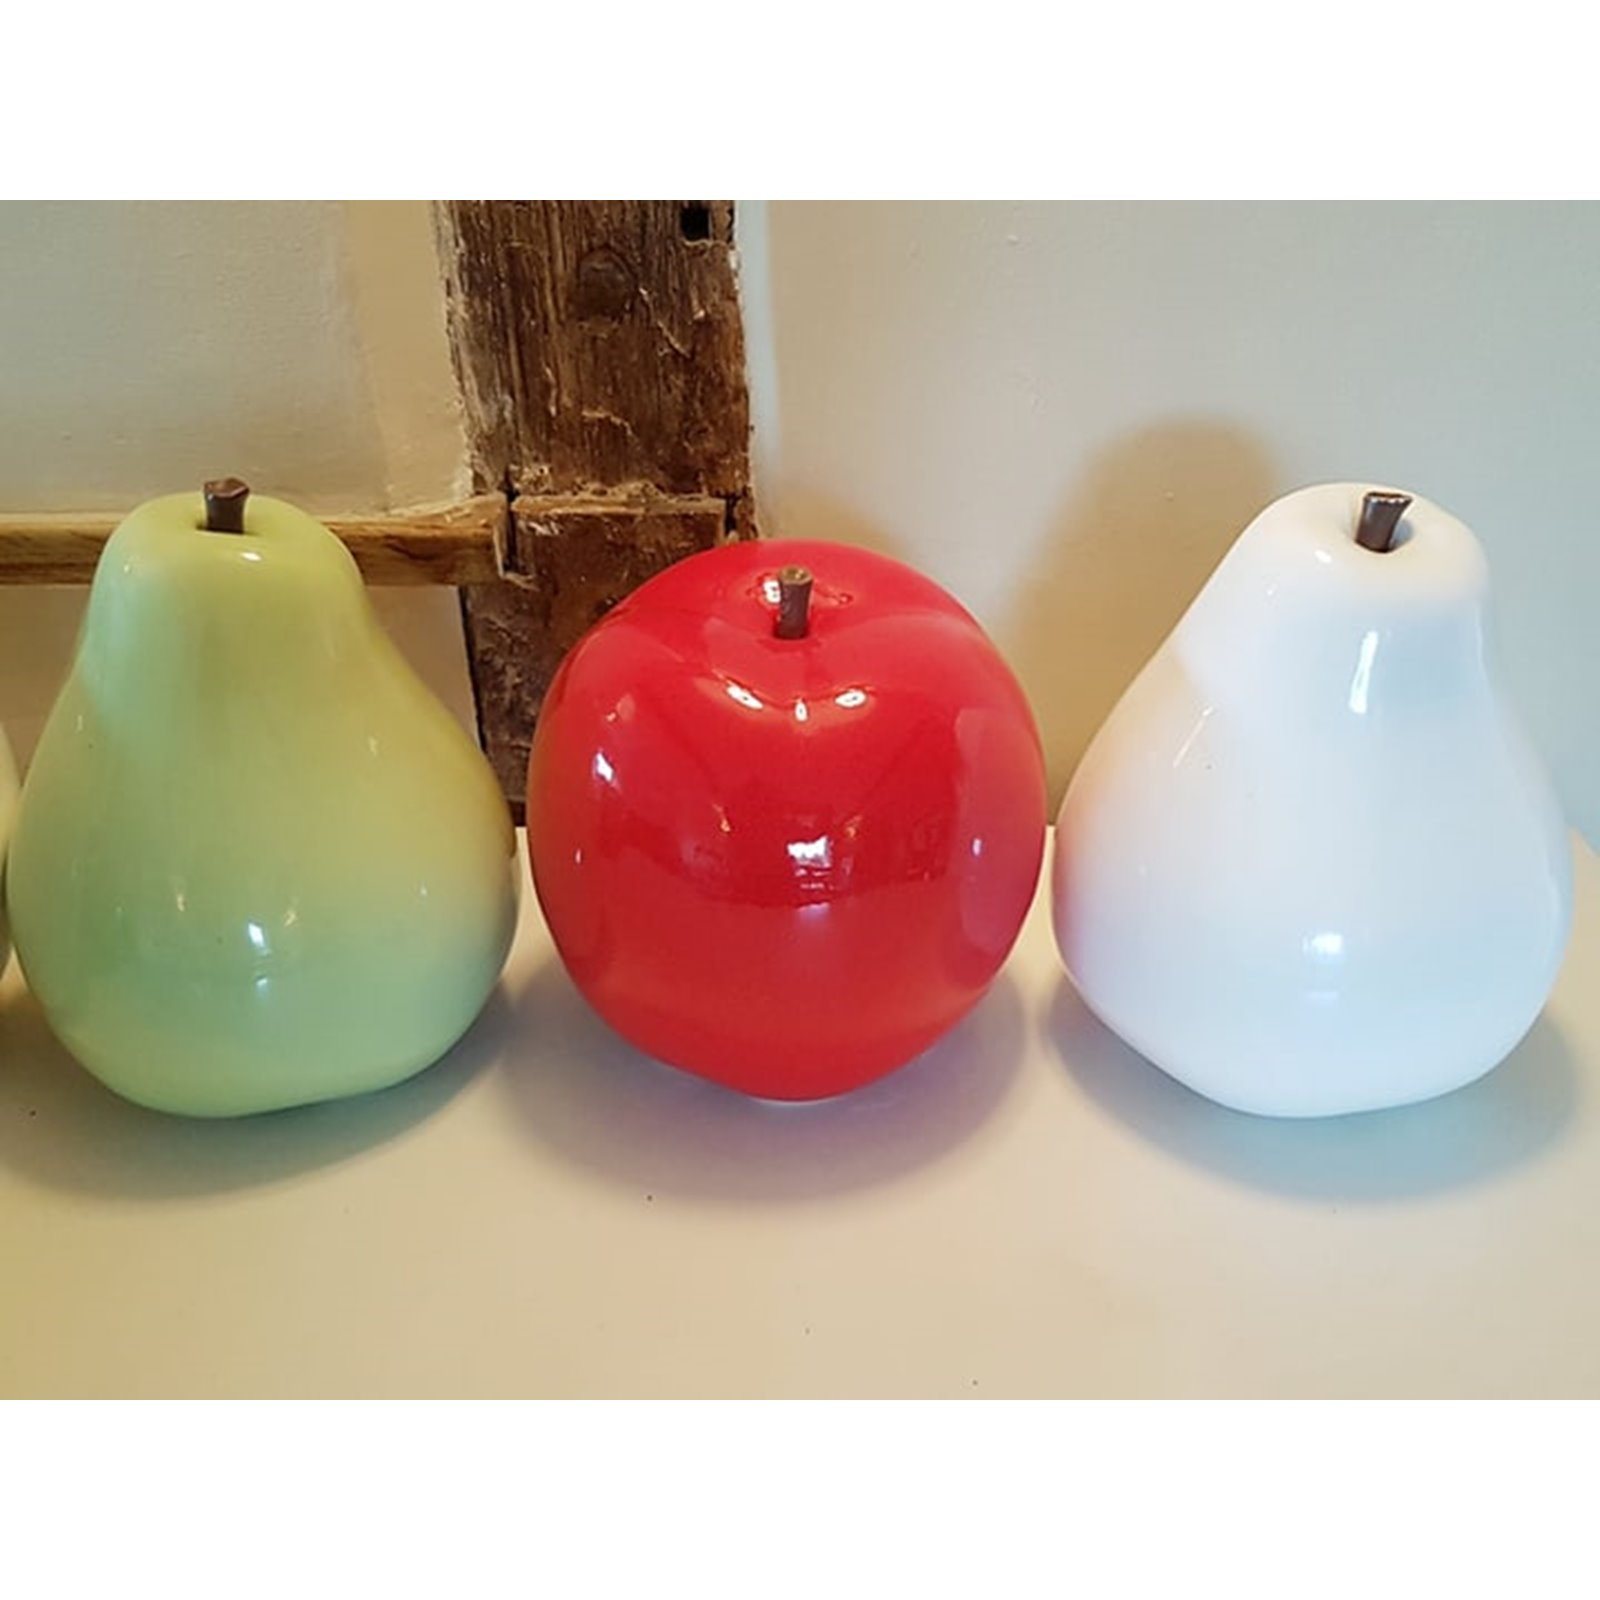 Oversized Ceramic White Apple Image